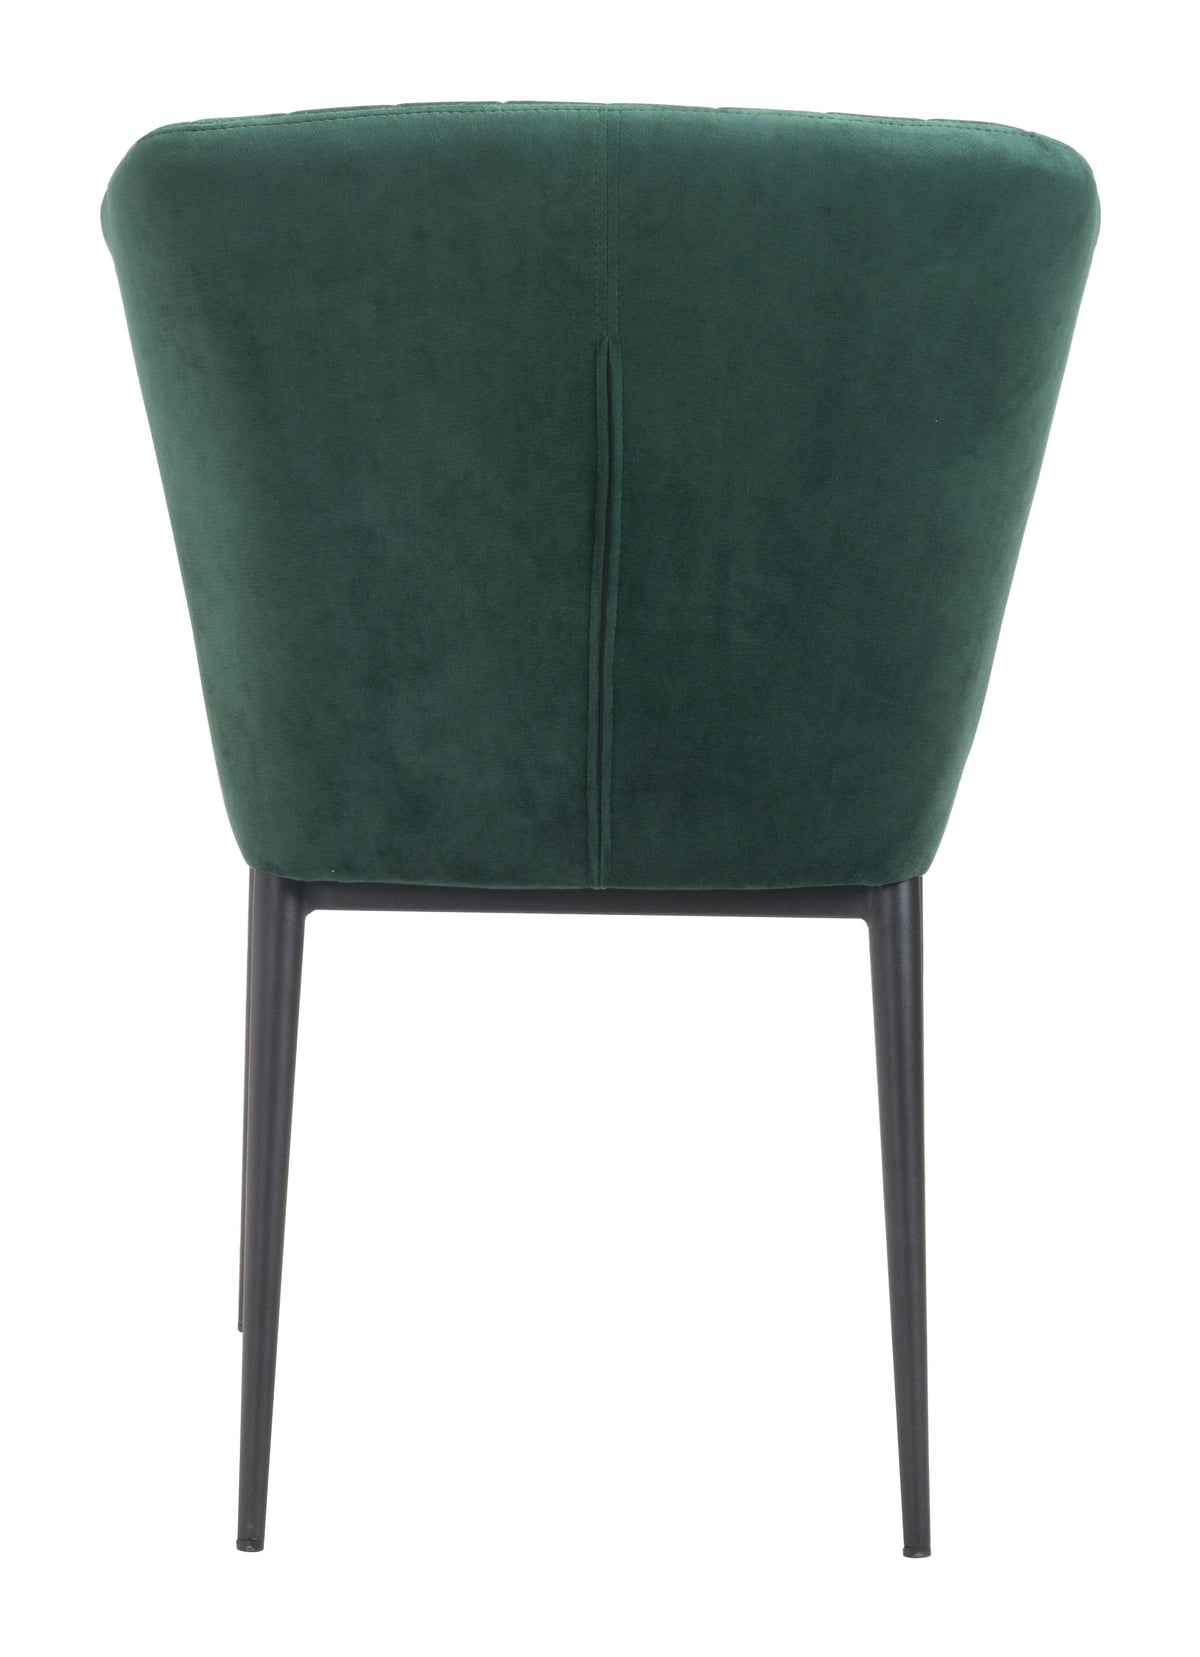 Paras Dining Chair Green Velvet - Set of 2